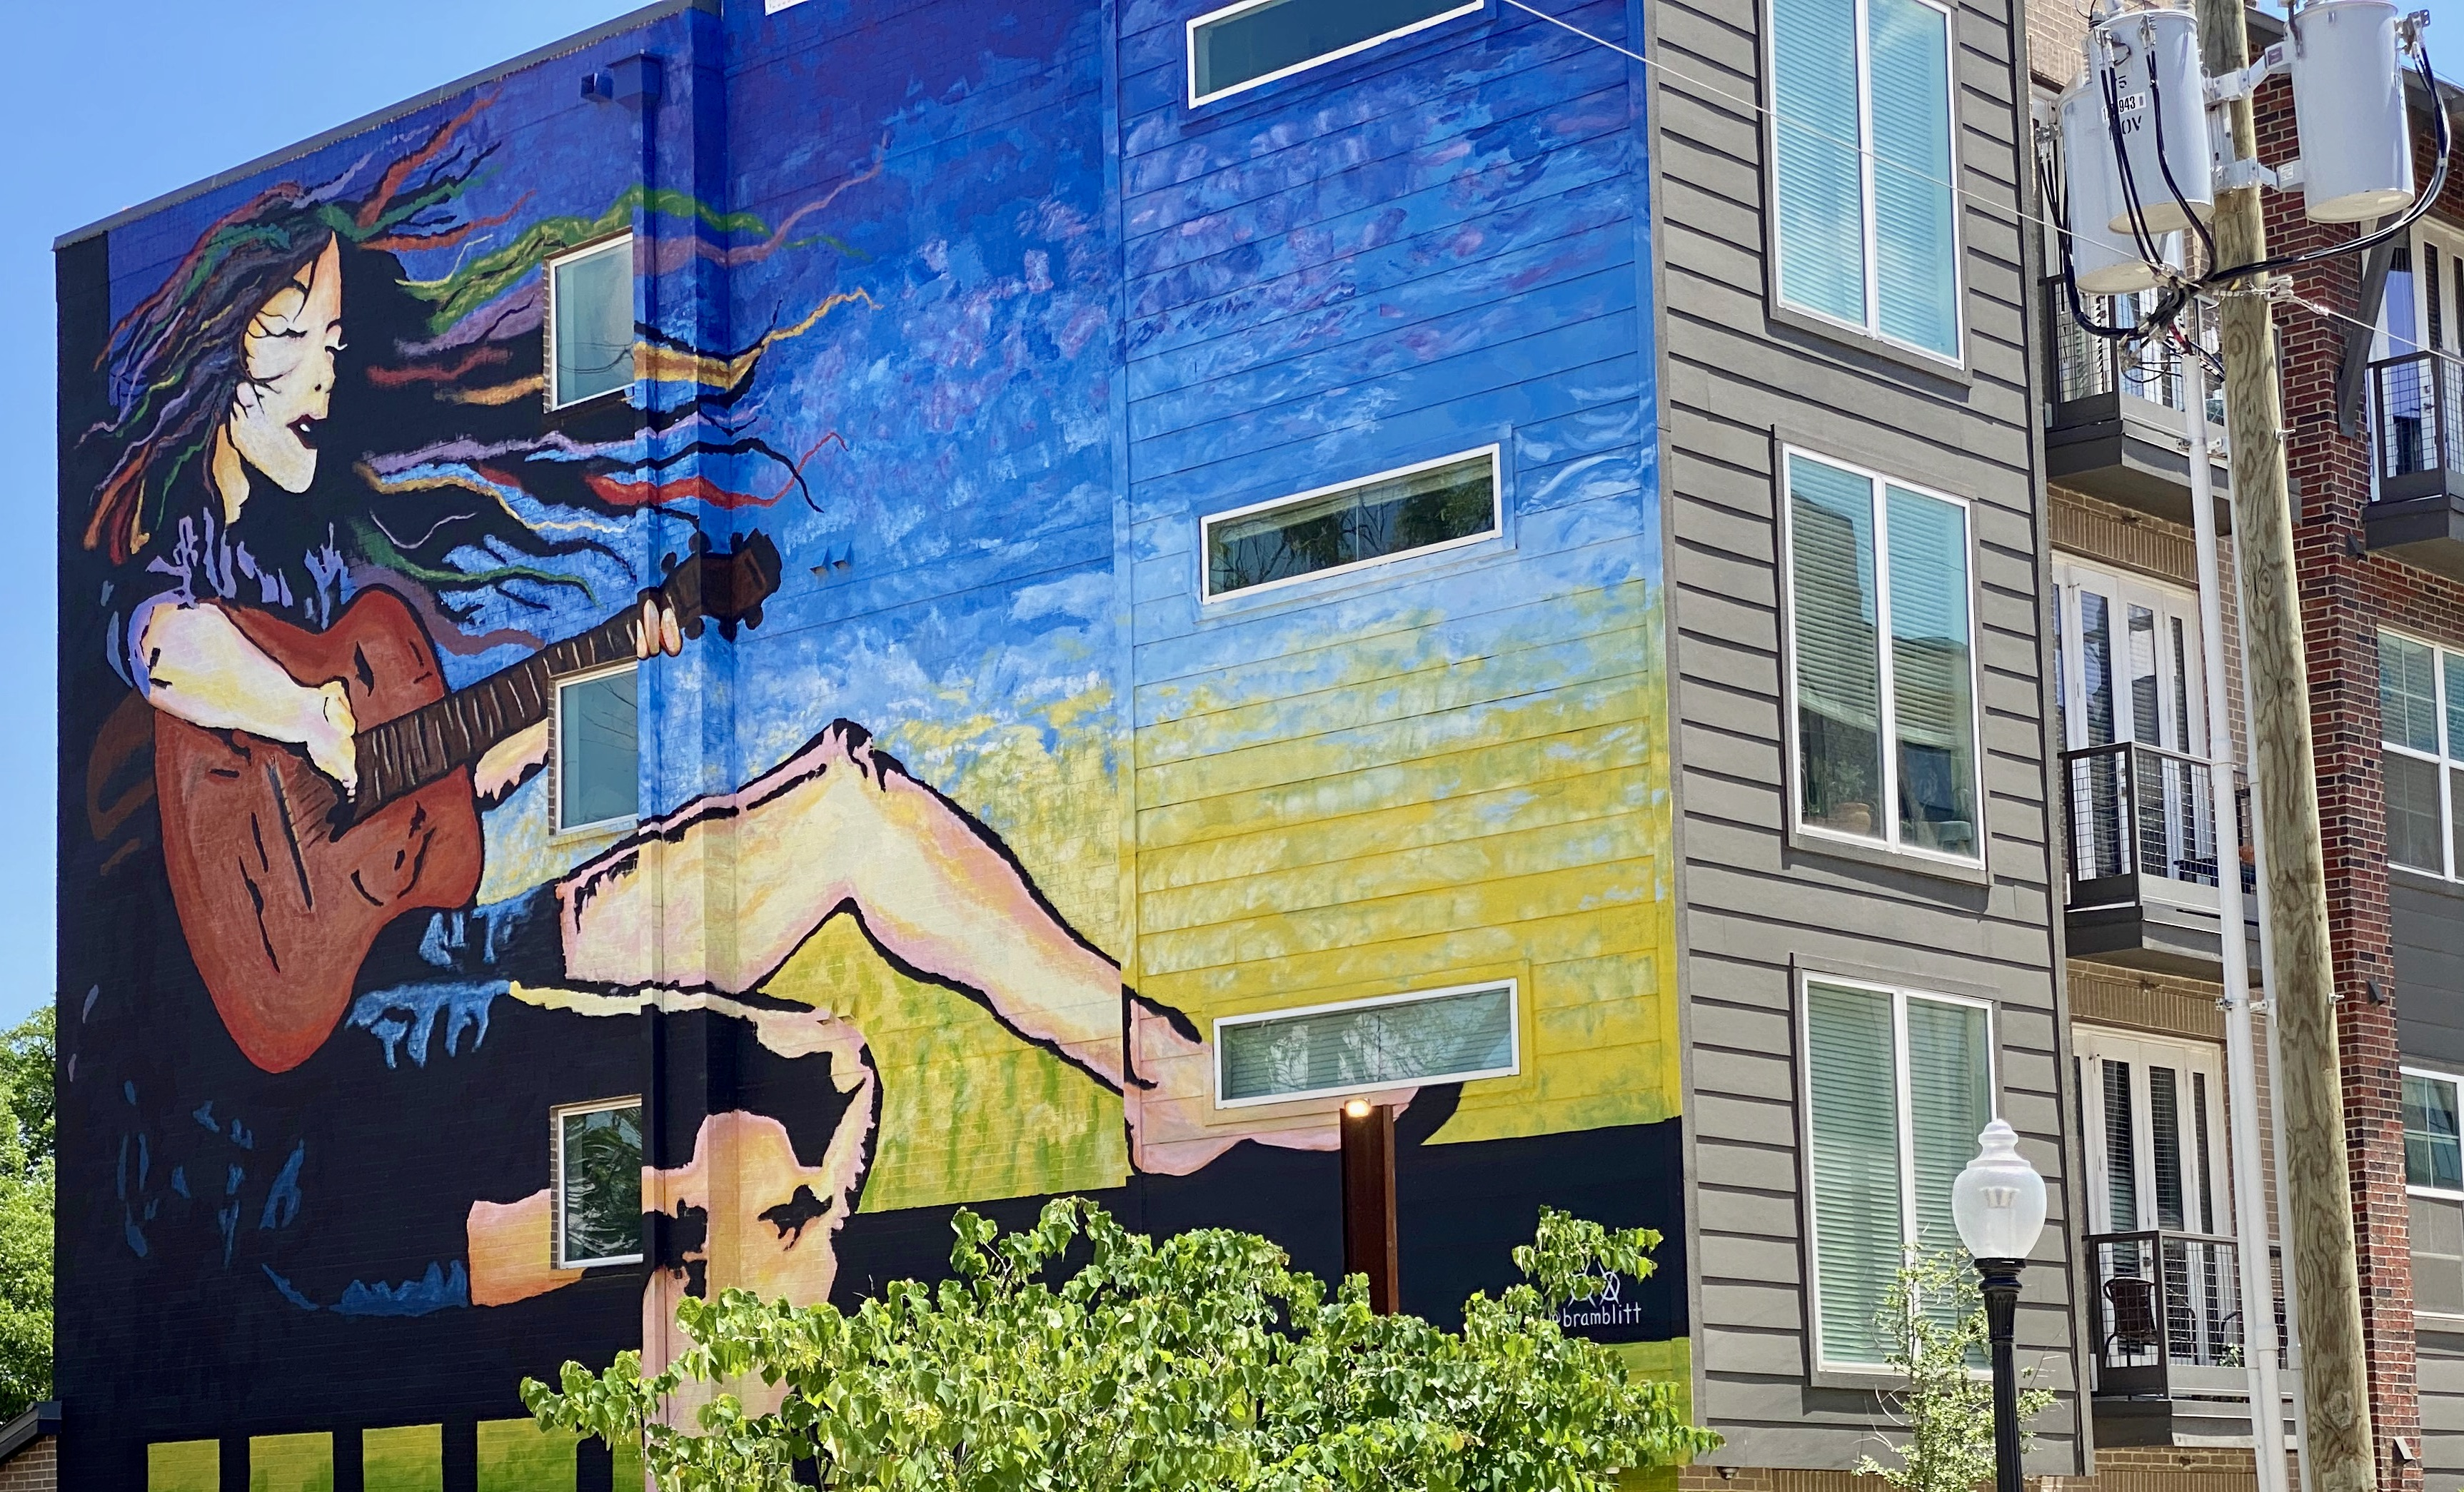 Bishop Highline Apartments and Mural